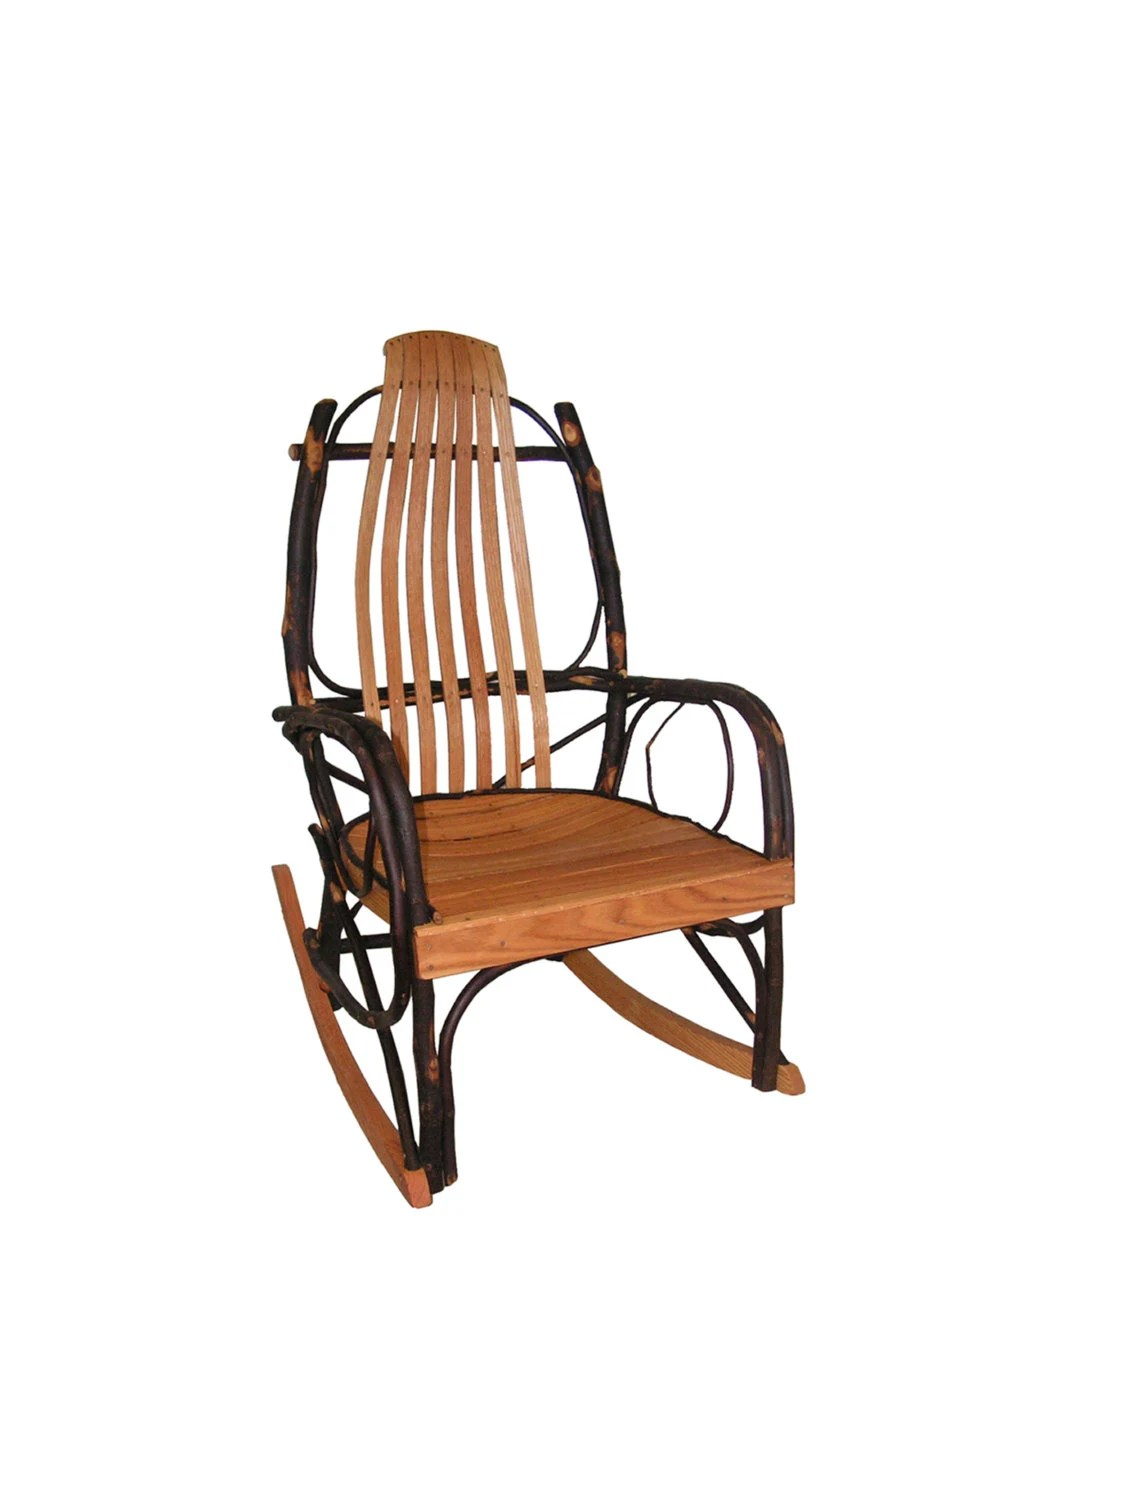 bent wood rocking chair outdoor furniture table and chairs hickory oak amish bentwood quick ship etsy image 0